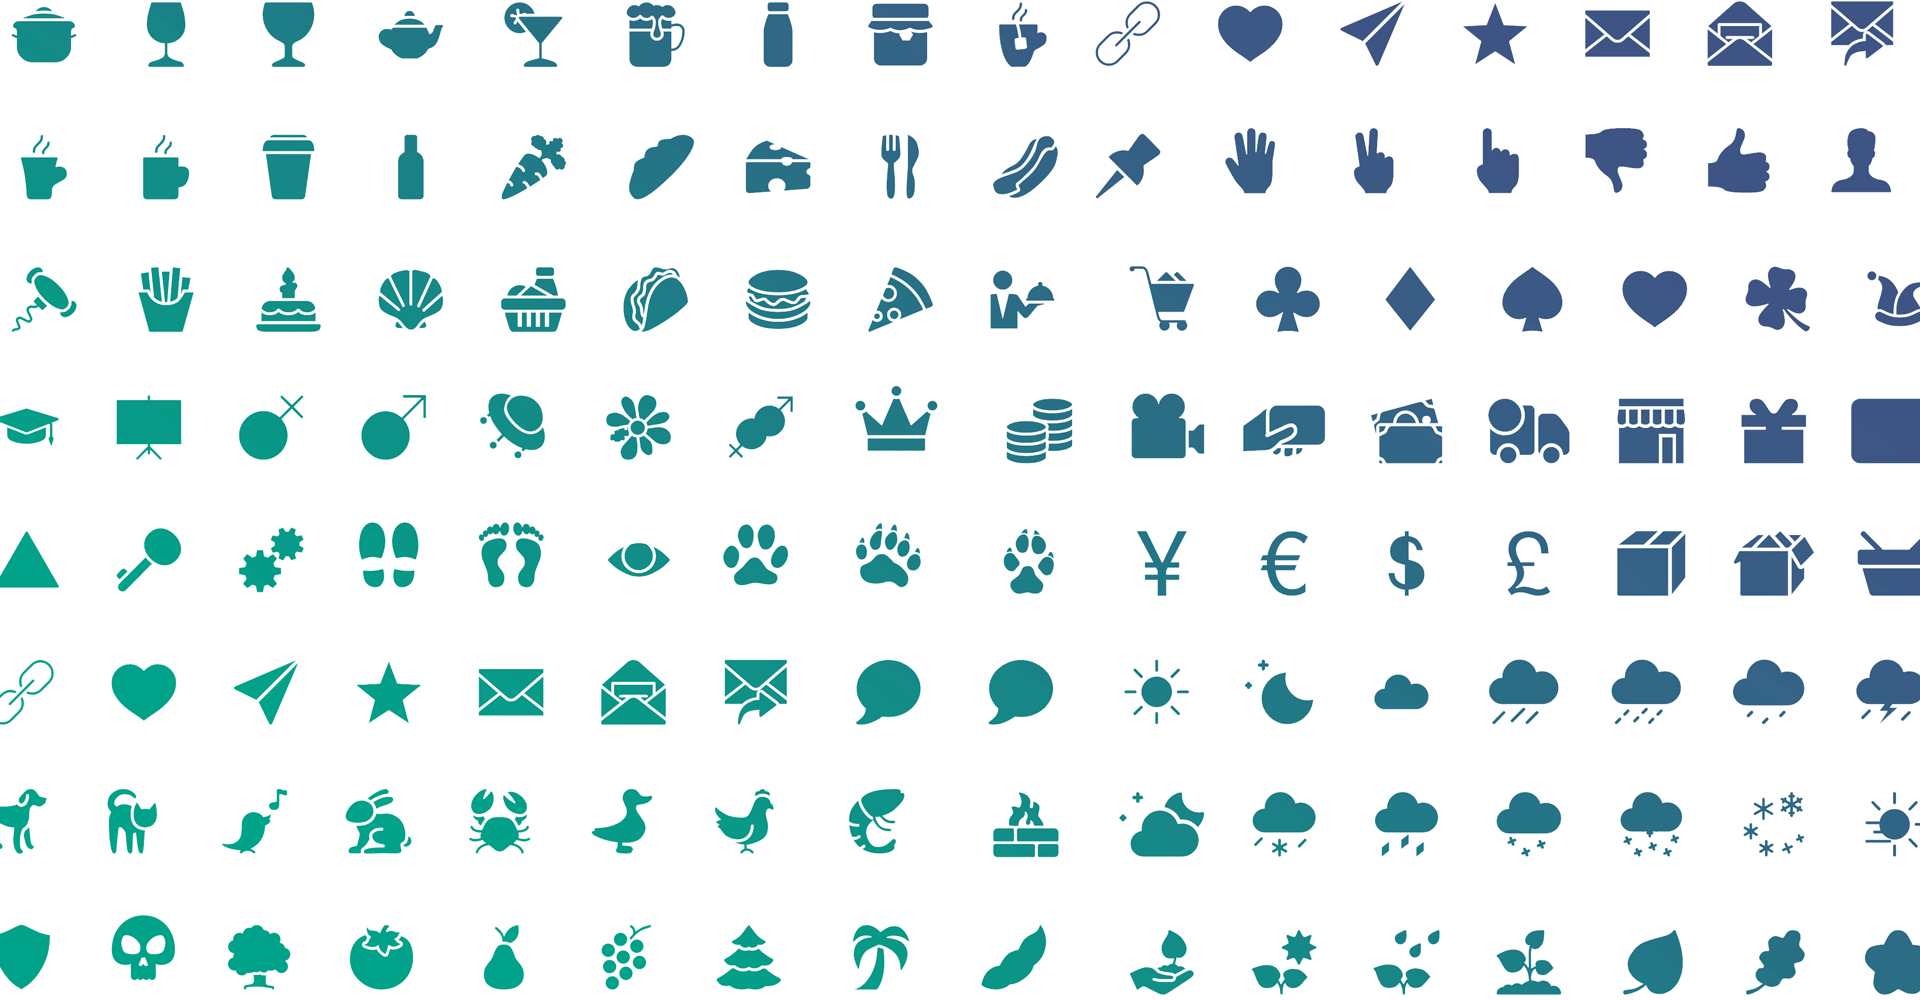 A library of 3000 icons